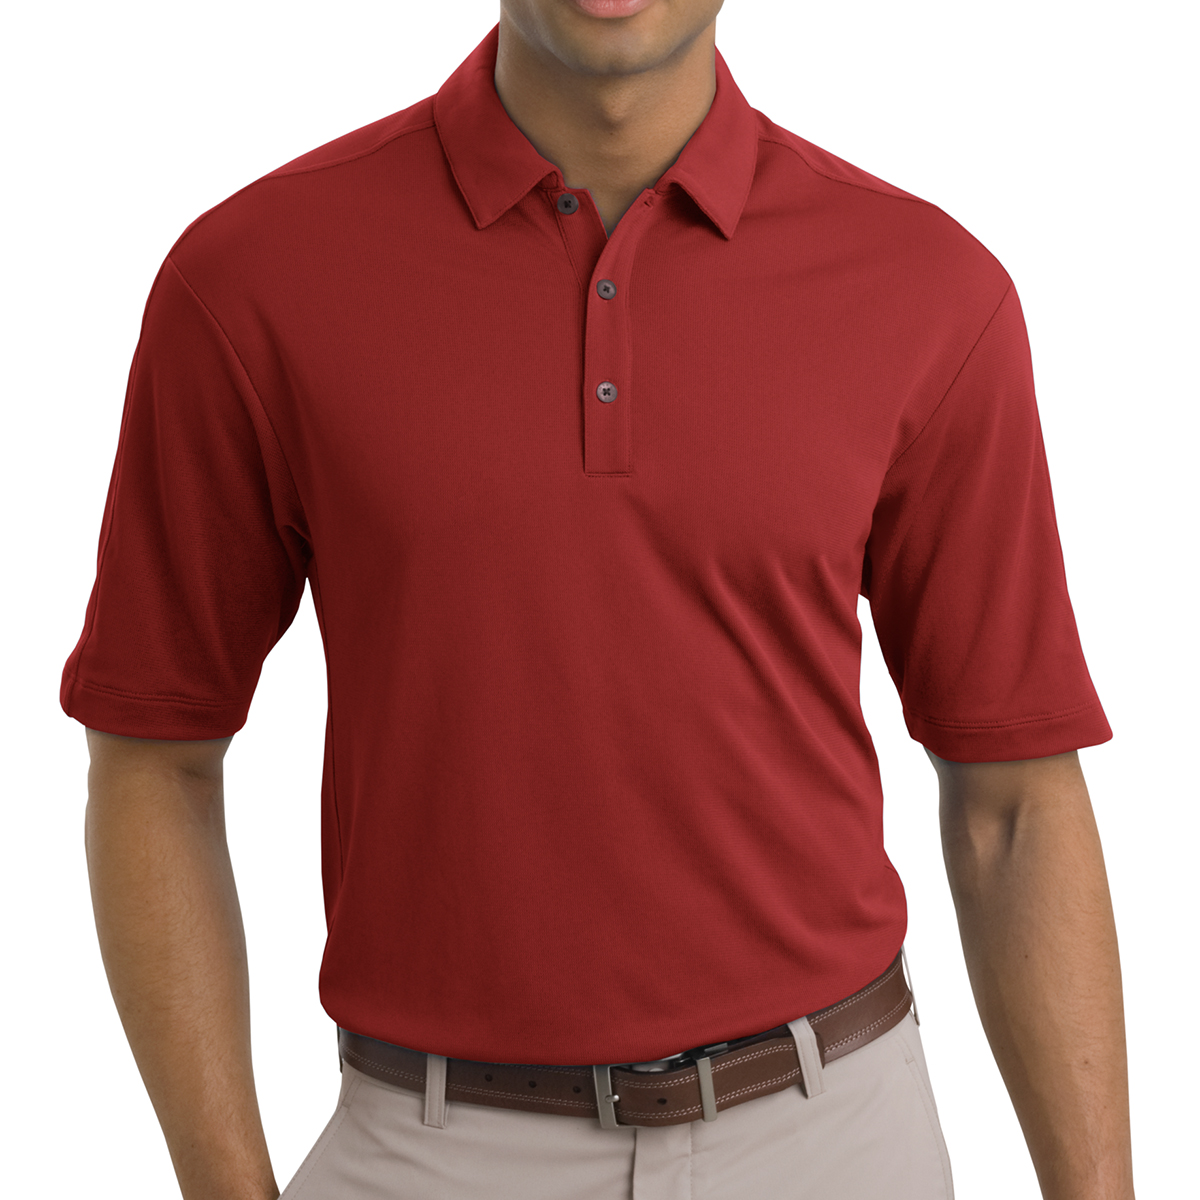 8b663d2c239 266998 Nike Tech Sport Dri-FIT Polo - Hit Promotional Products